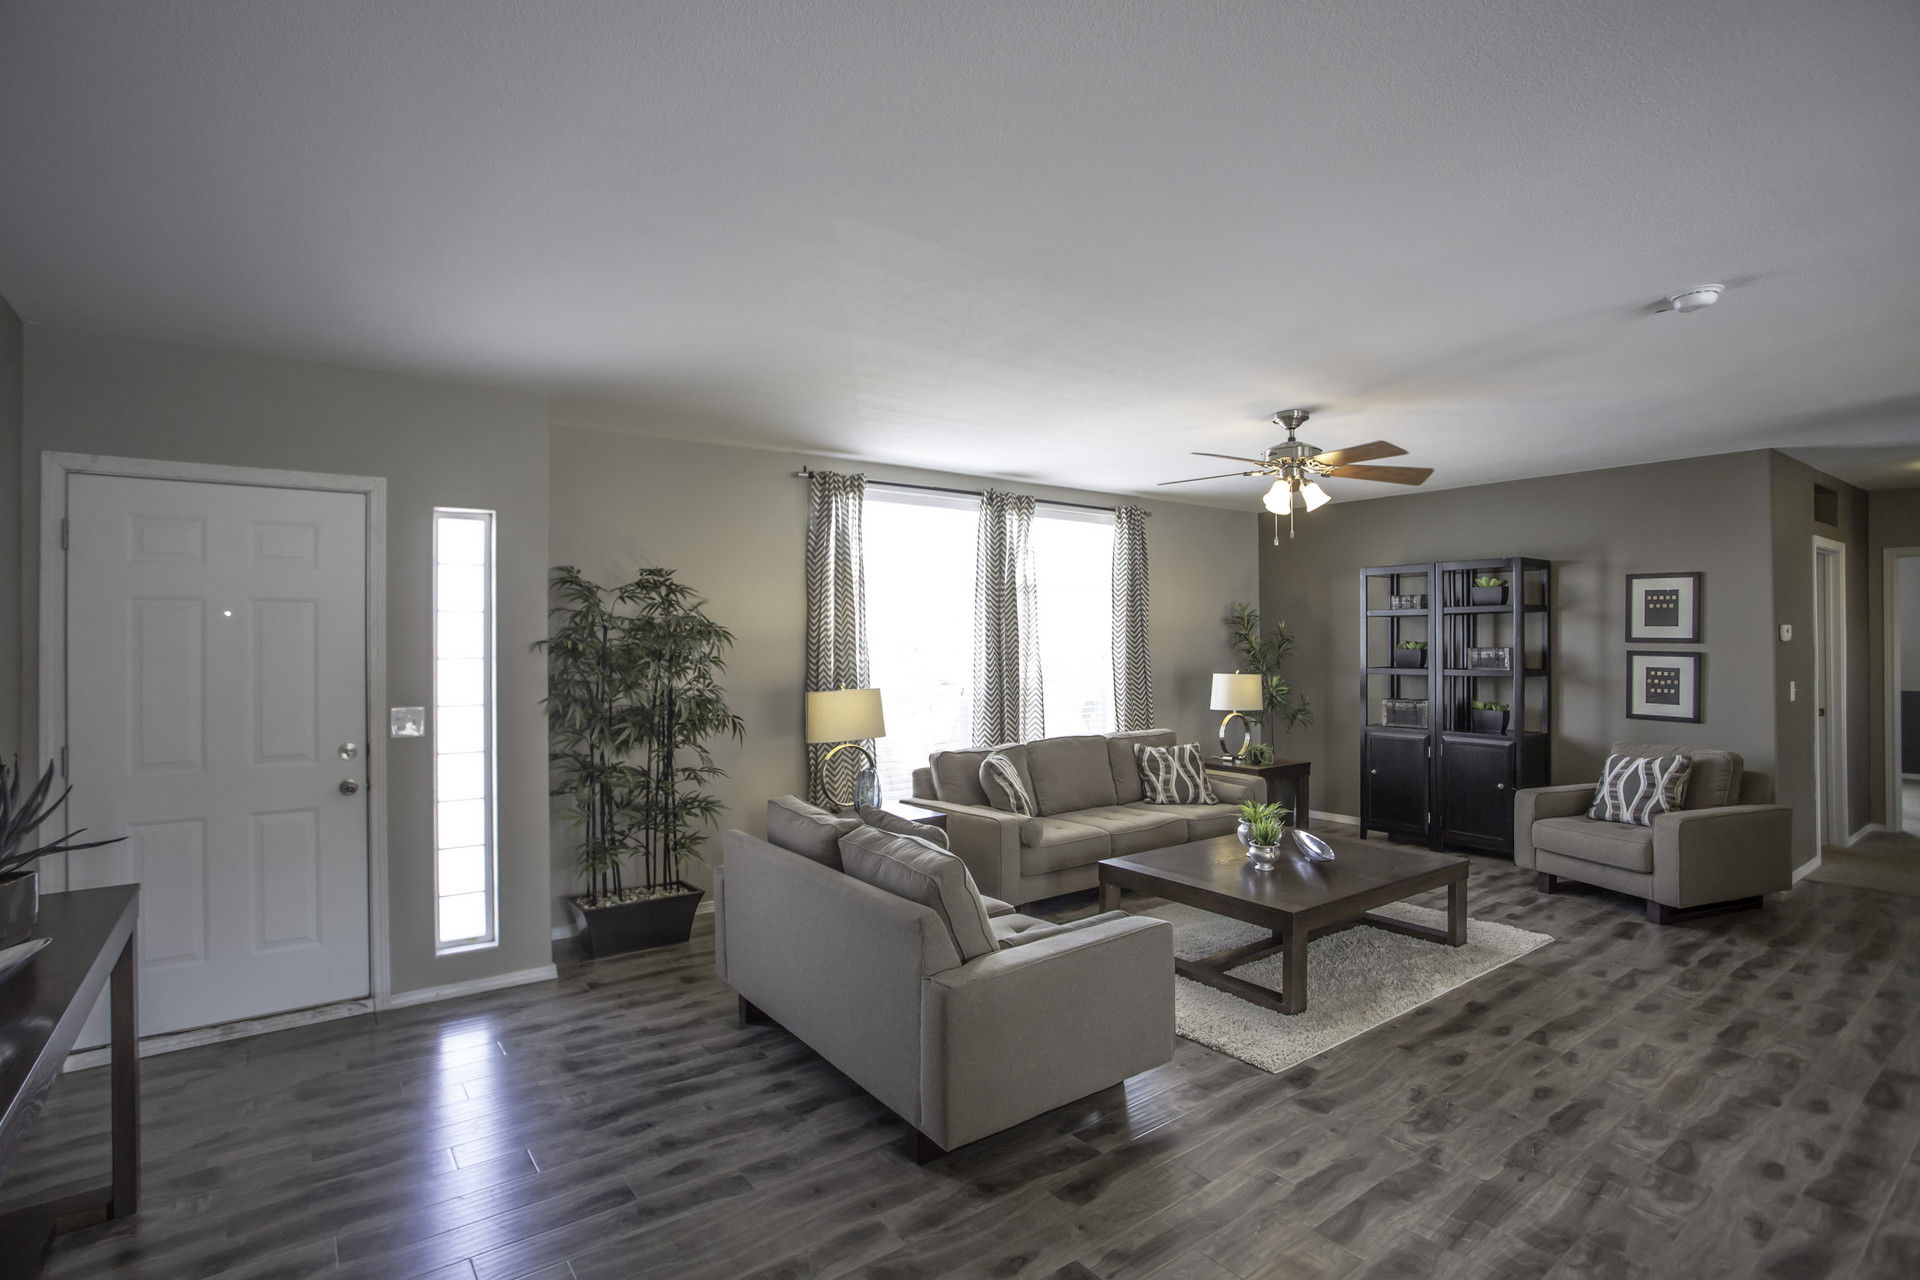 Rhode Island Sales Tax >> RC3064B 3 bed / 2 bath / 1920 sqft affordable home for $89900 | Model RC3064B from Homes Direct